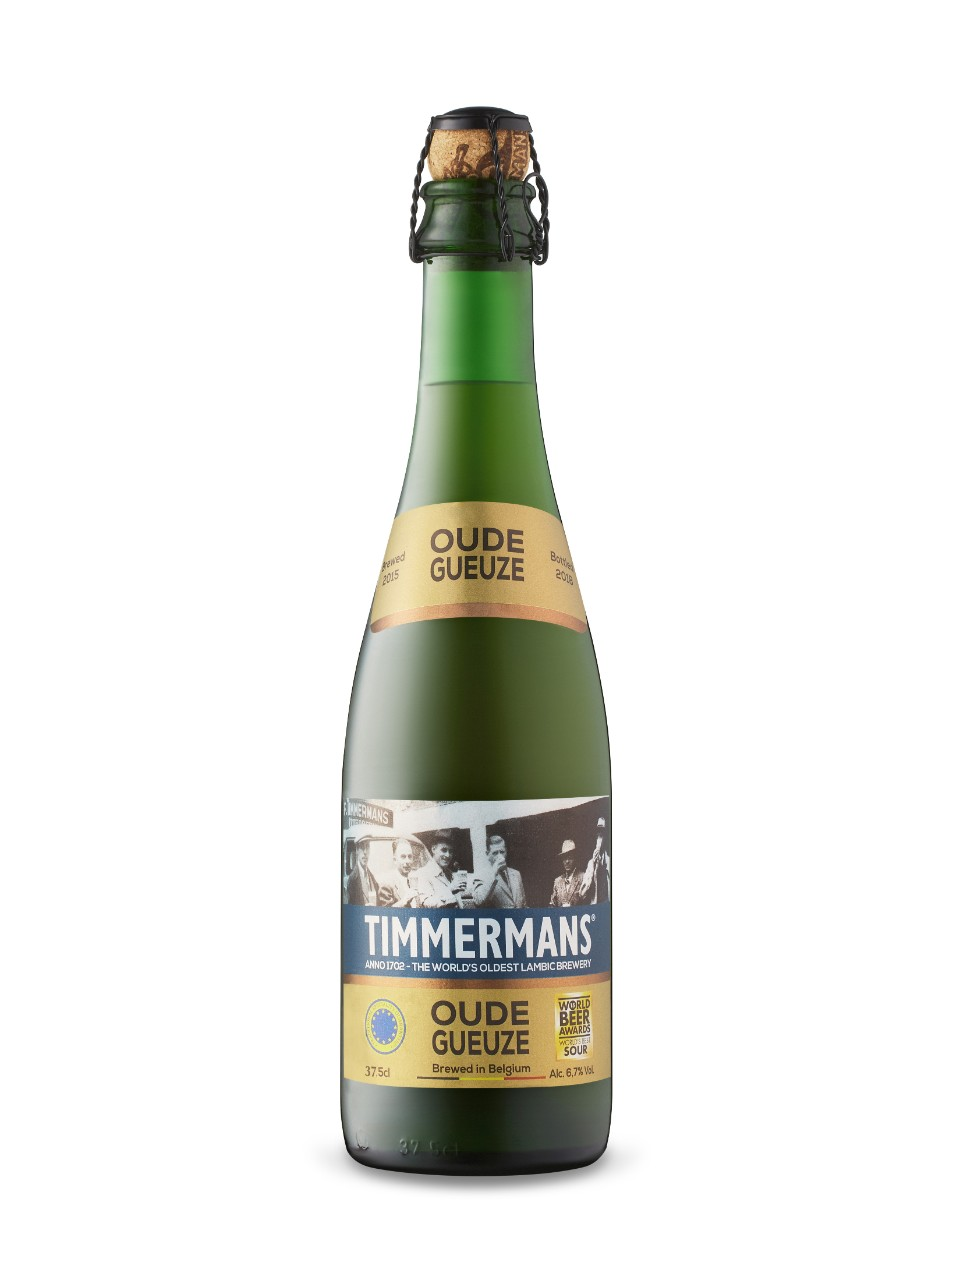 Timmerman's Oude Gueze